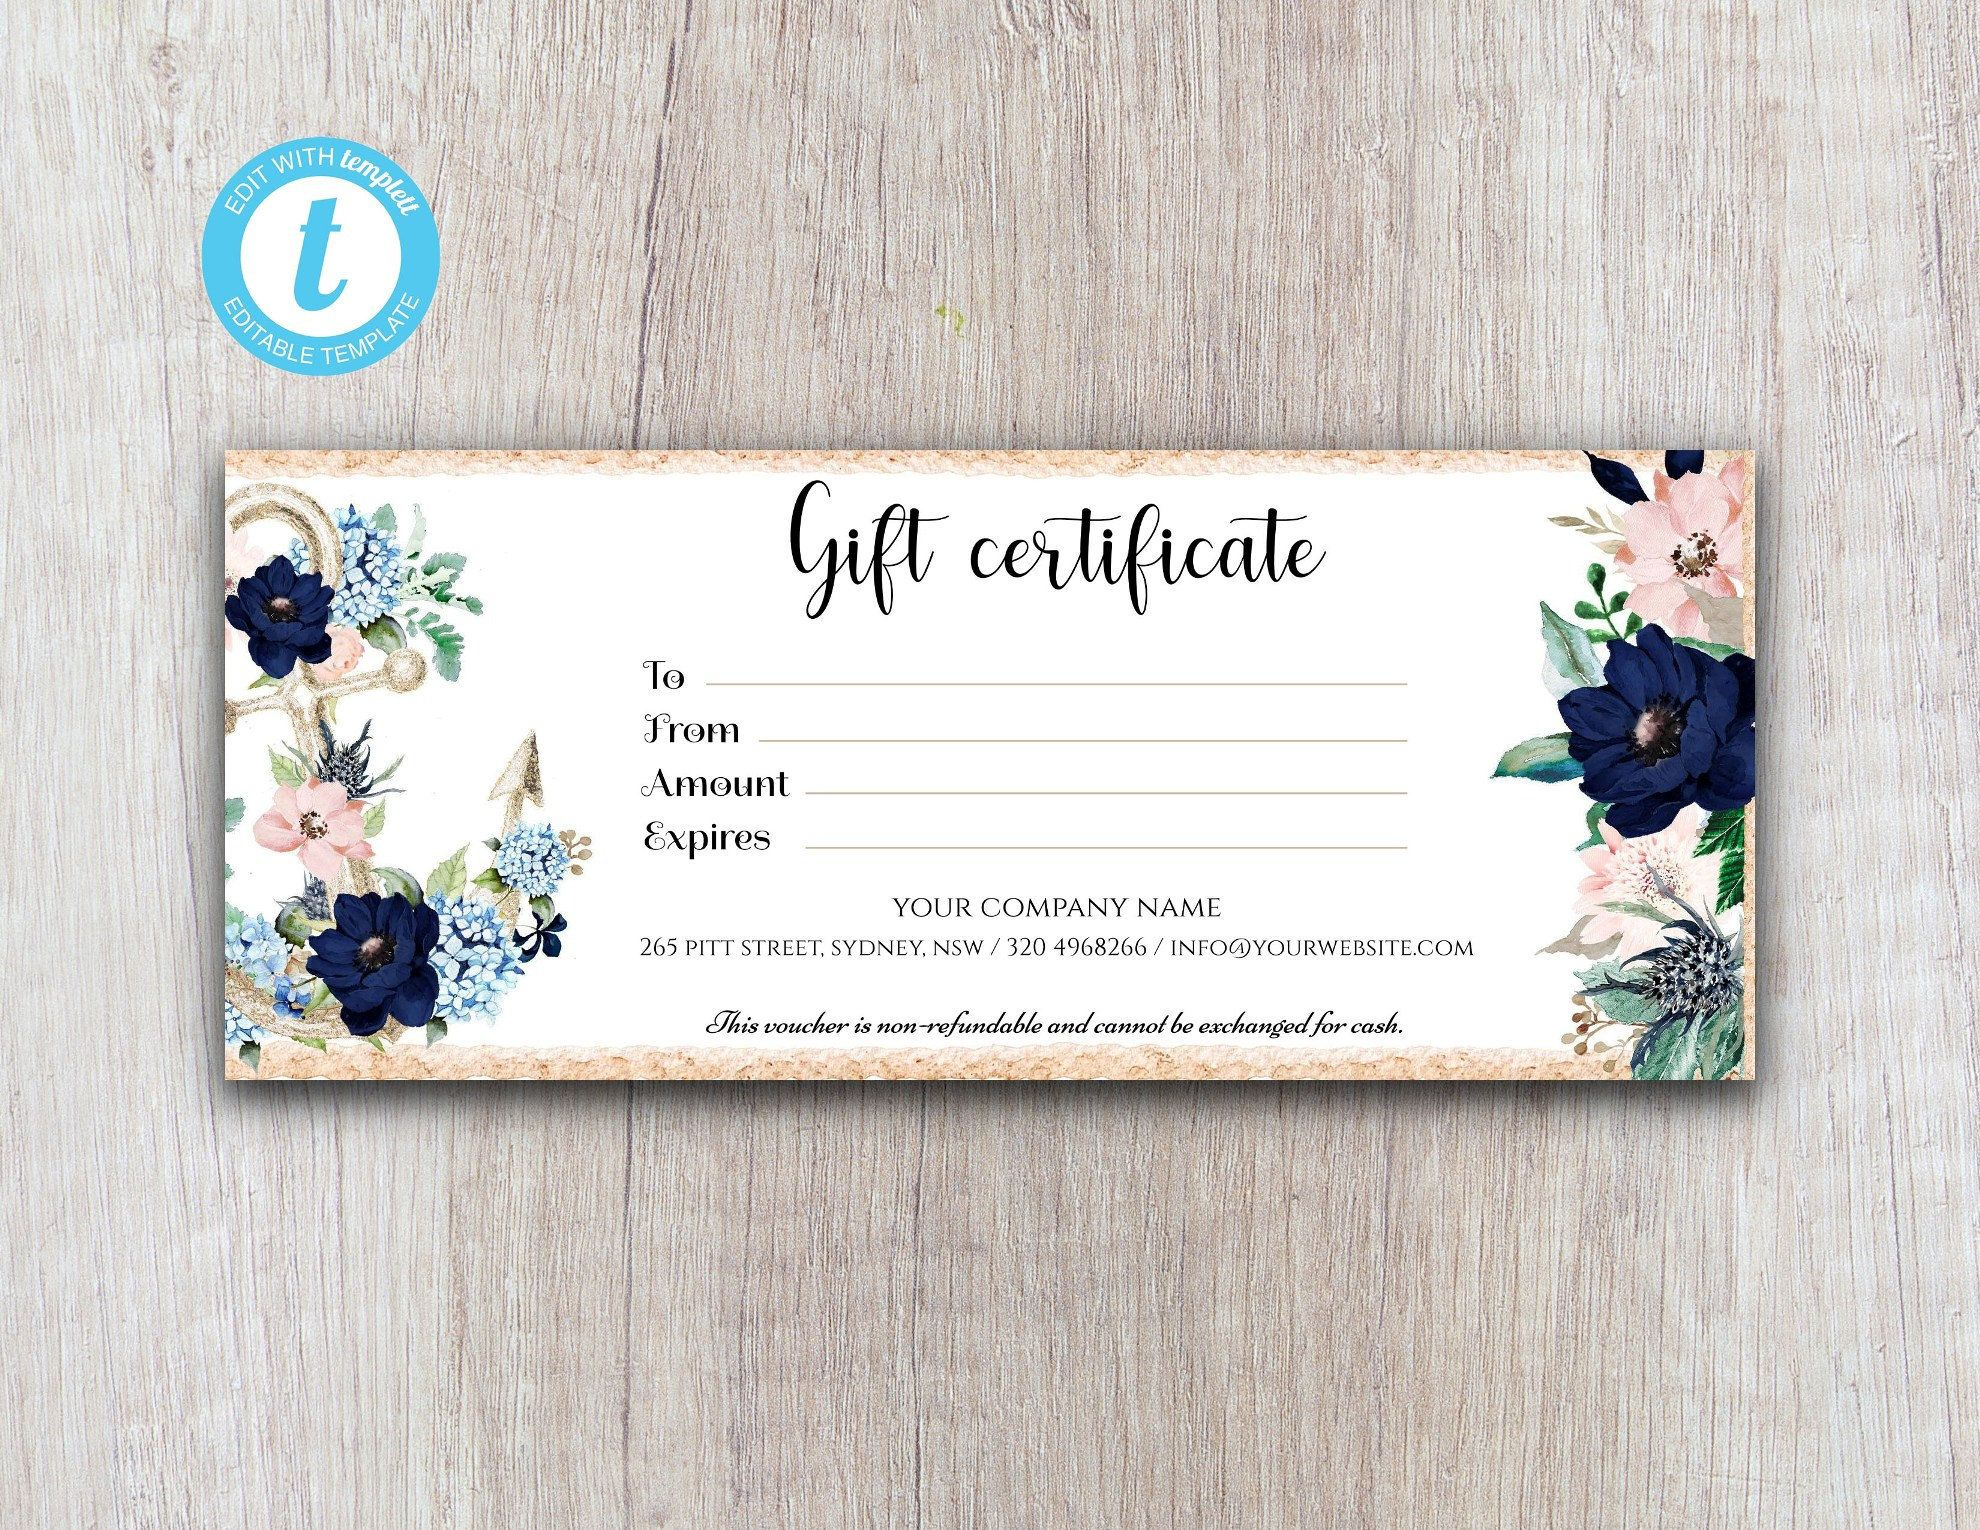 Nautical Floral Gift Certificate Template Printable Gift Certificate Editable Template Instant Download Gift Card Template Voucher Shop Printable Gift Certificate Gift Certificate Template Printable Gift